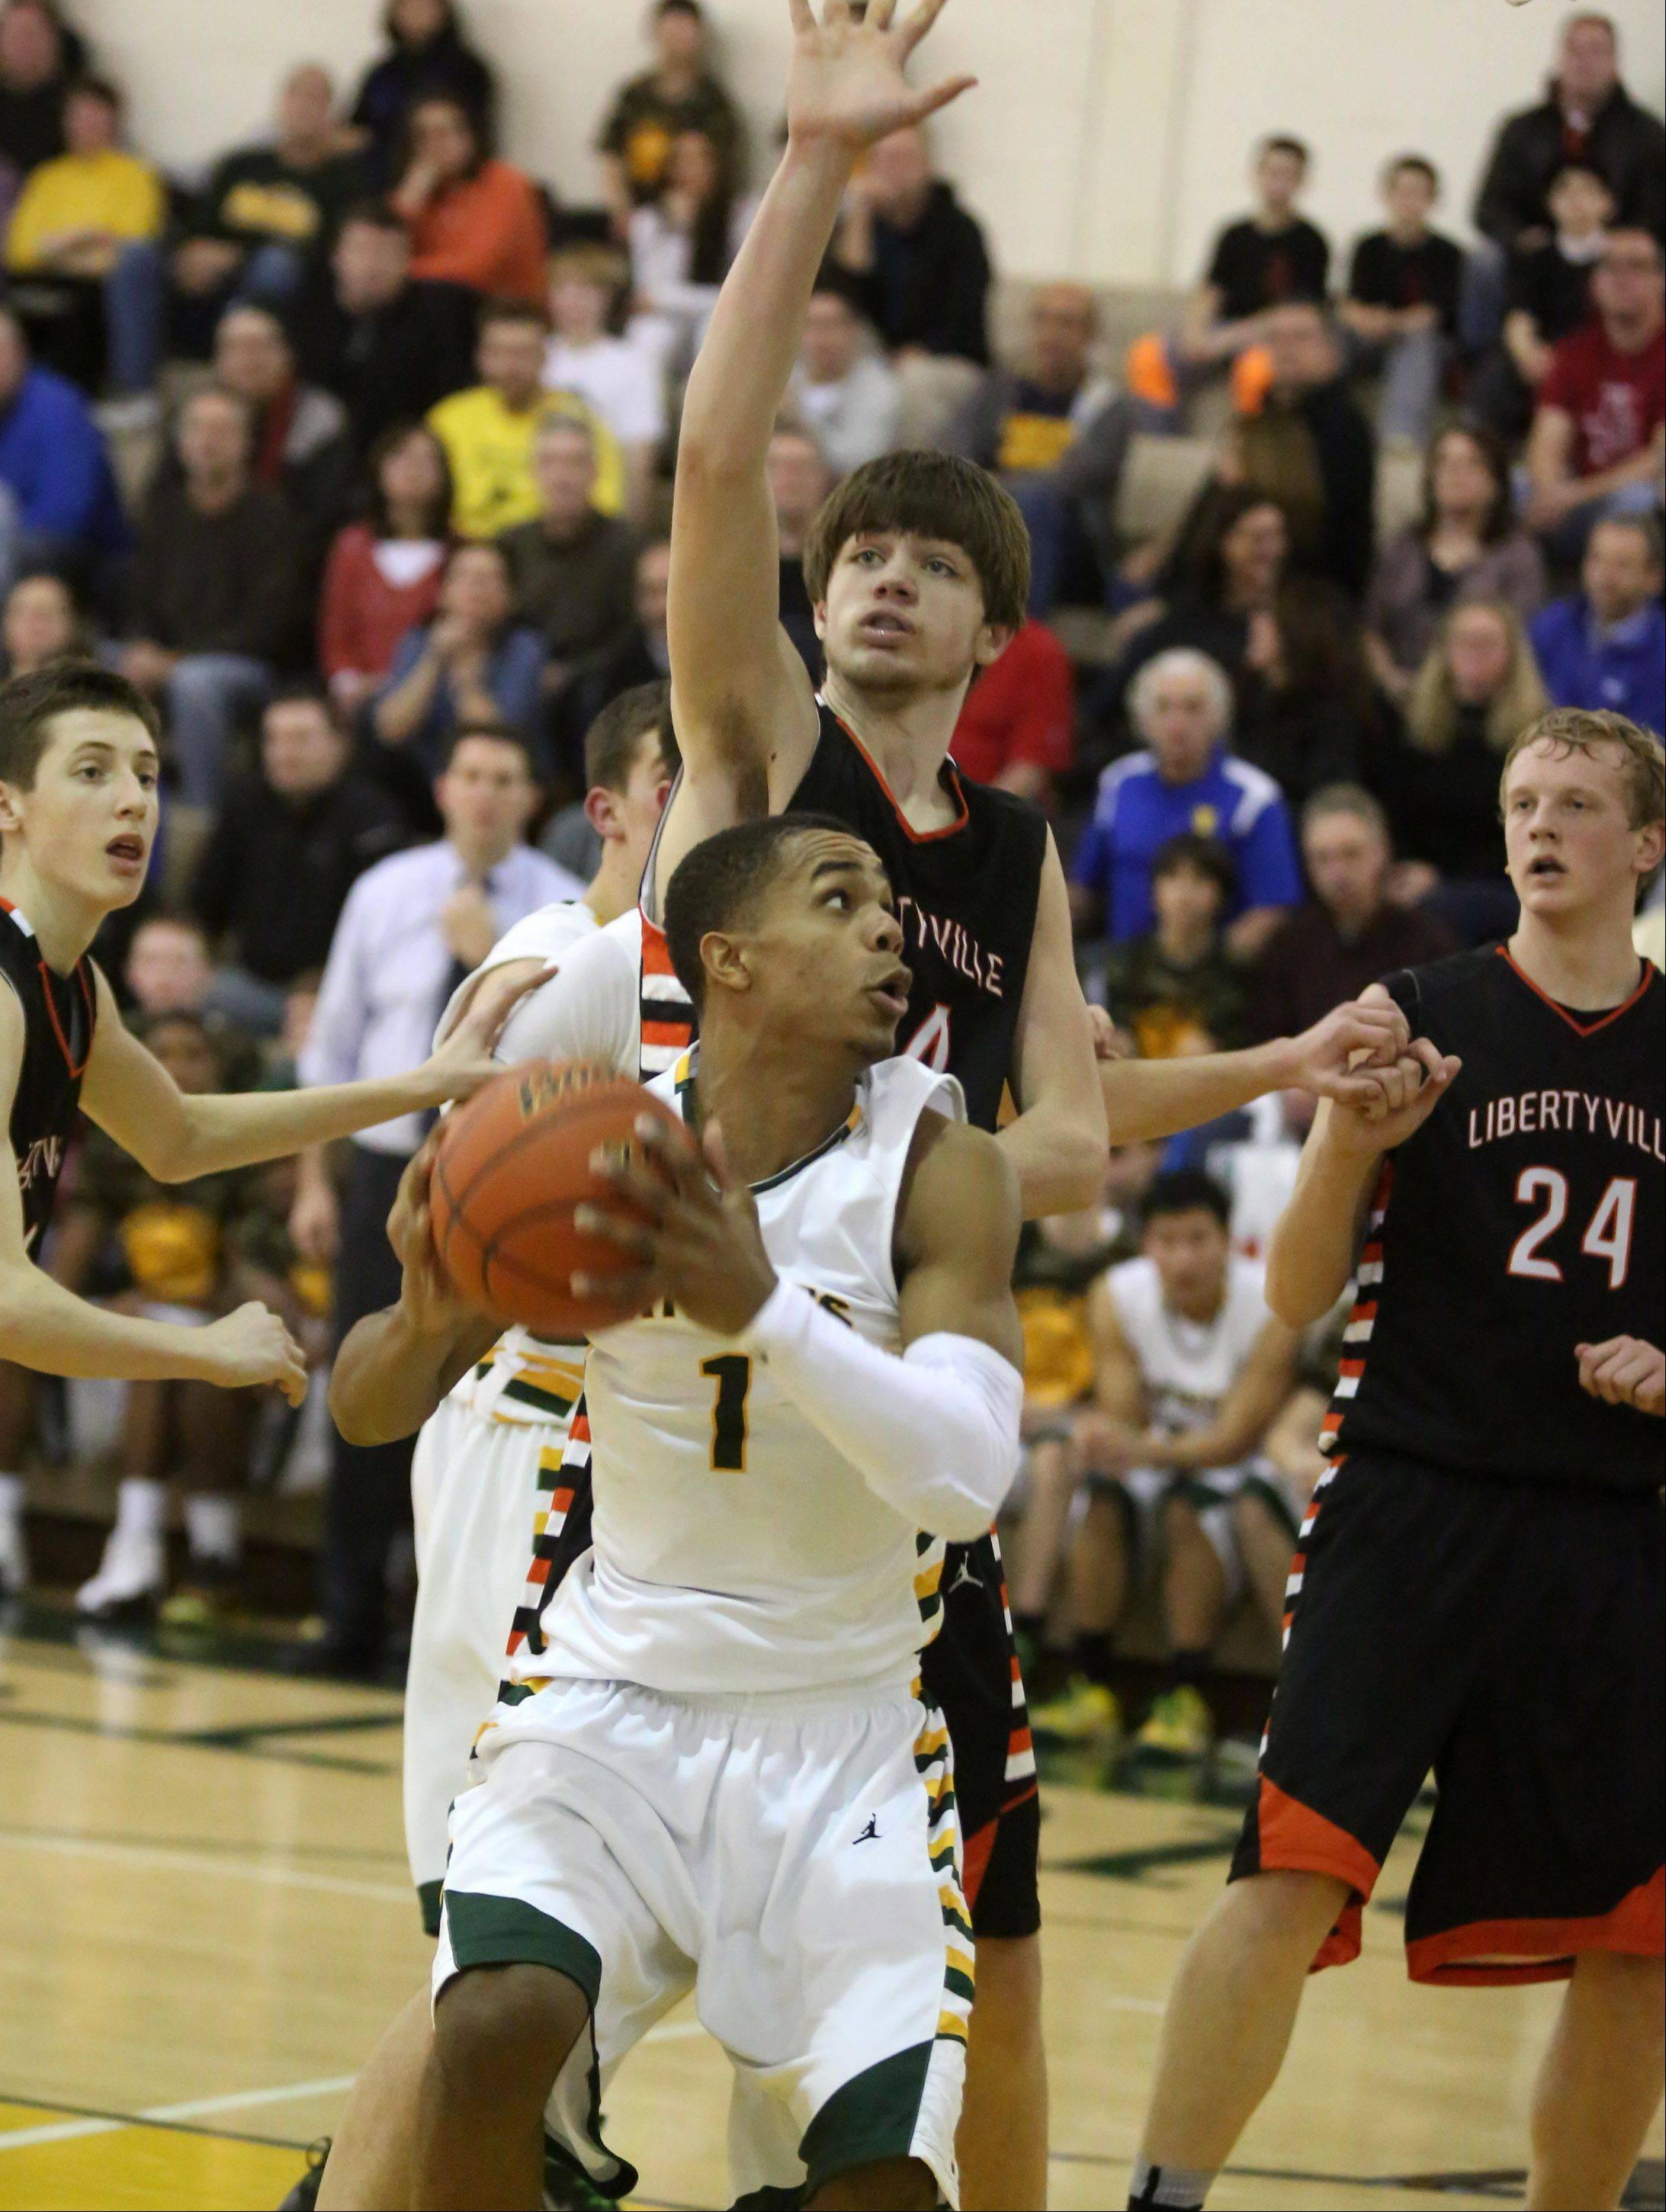 Stevenson guard Connor Cashaw looks to shoot against Libertyville center Joe Borcia.